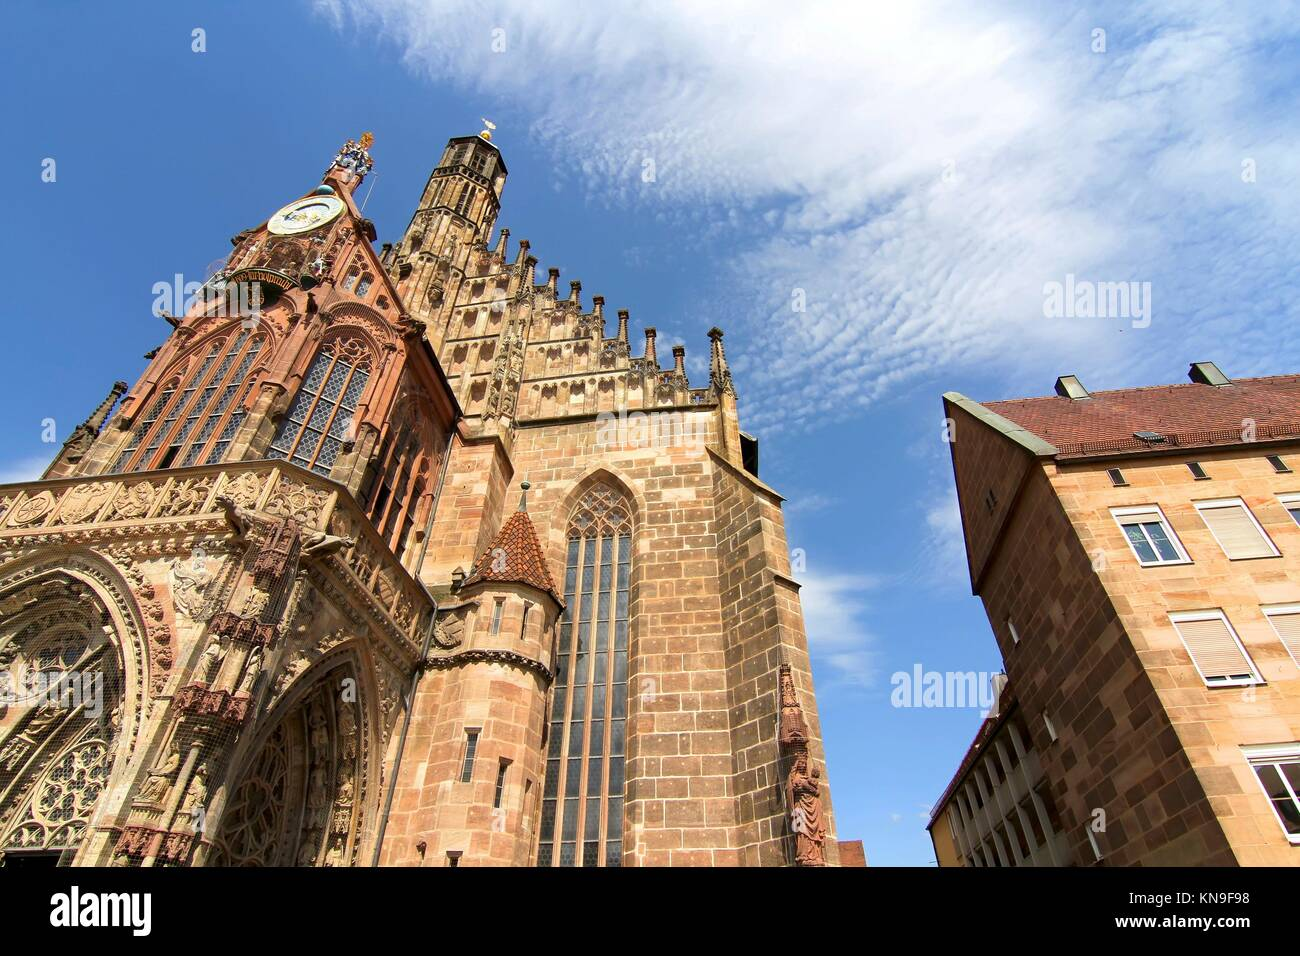 The Frauenkirche (Church of Ladies) in Nuremberg, Bavaria, Germany. - Stock Image